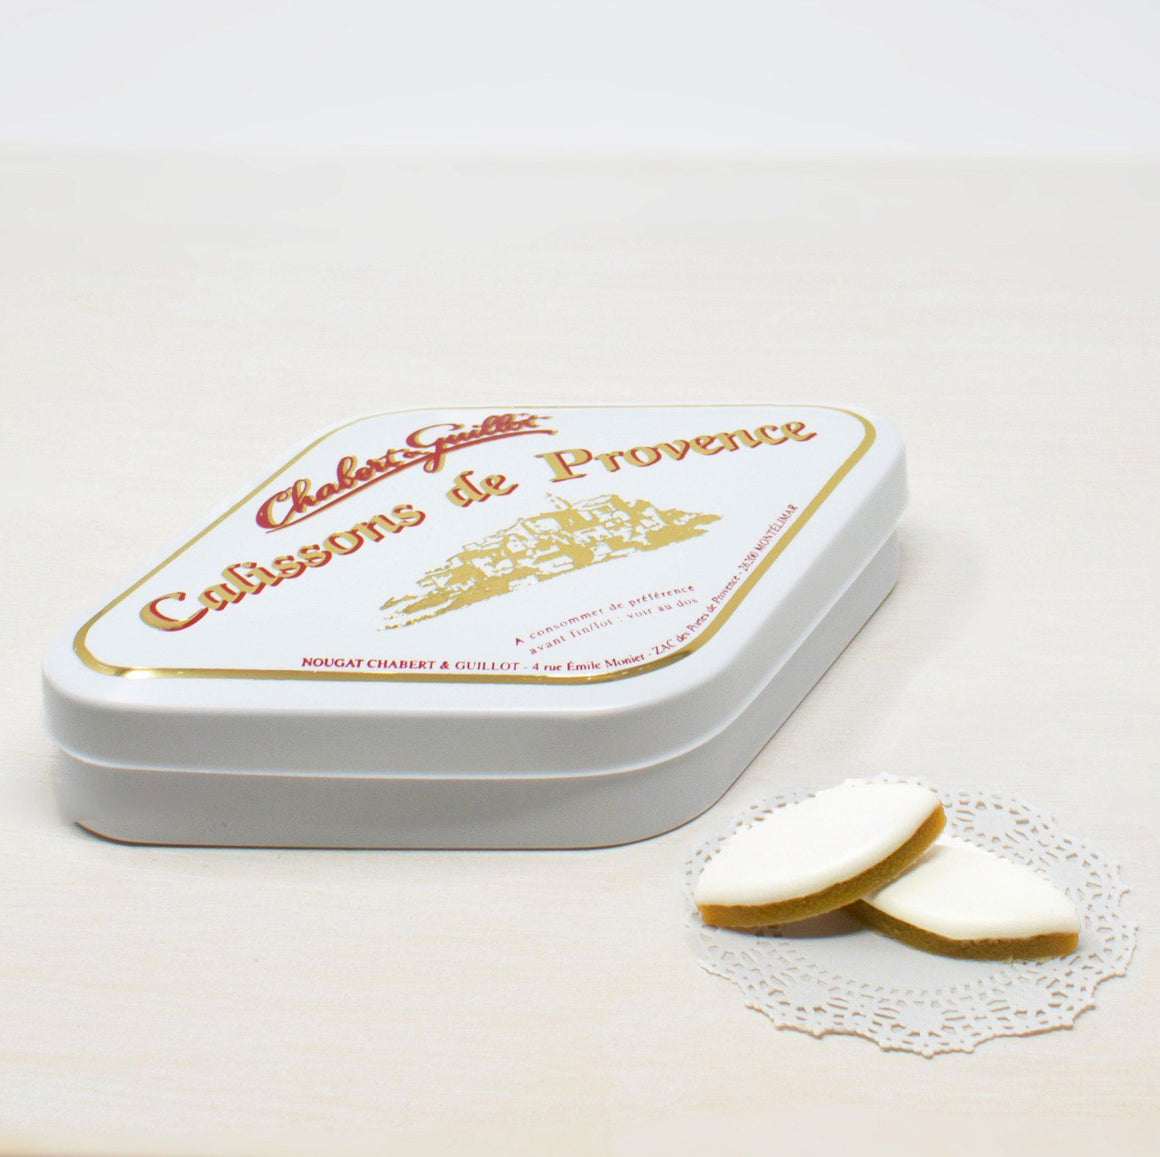 Calissons Provence French Candies Sweets